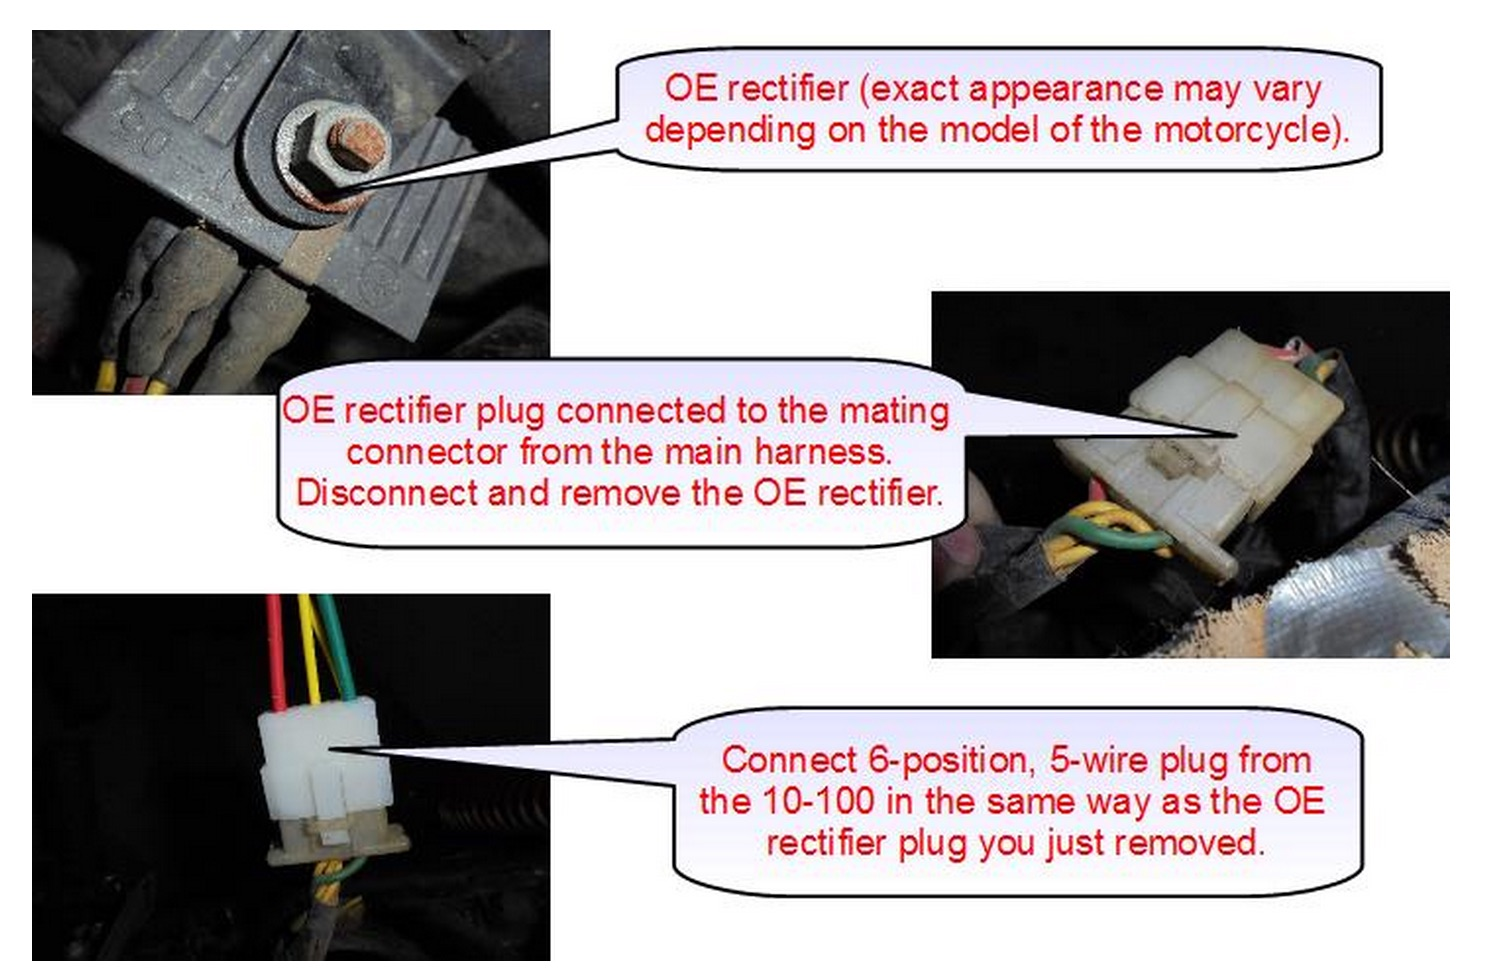 5 Wire Regulator Diagram Expert Wiring For Rhino Aftermarket Honda Rectifier Oem Style Replacement Part Sensor